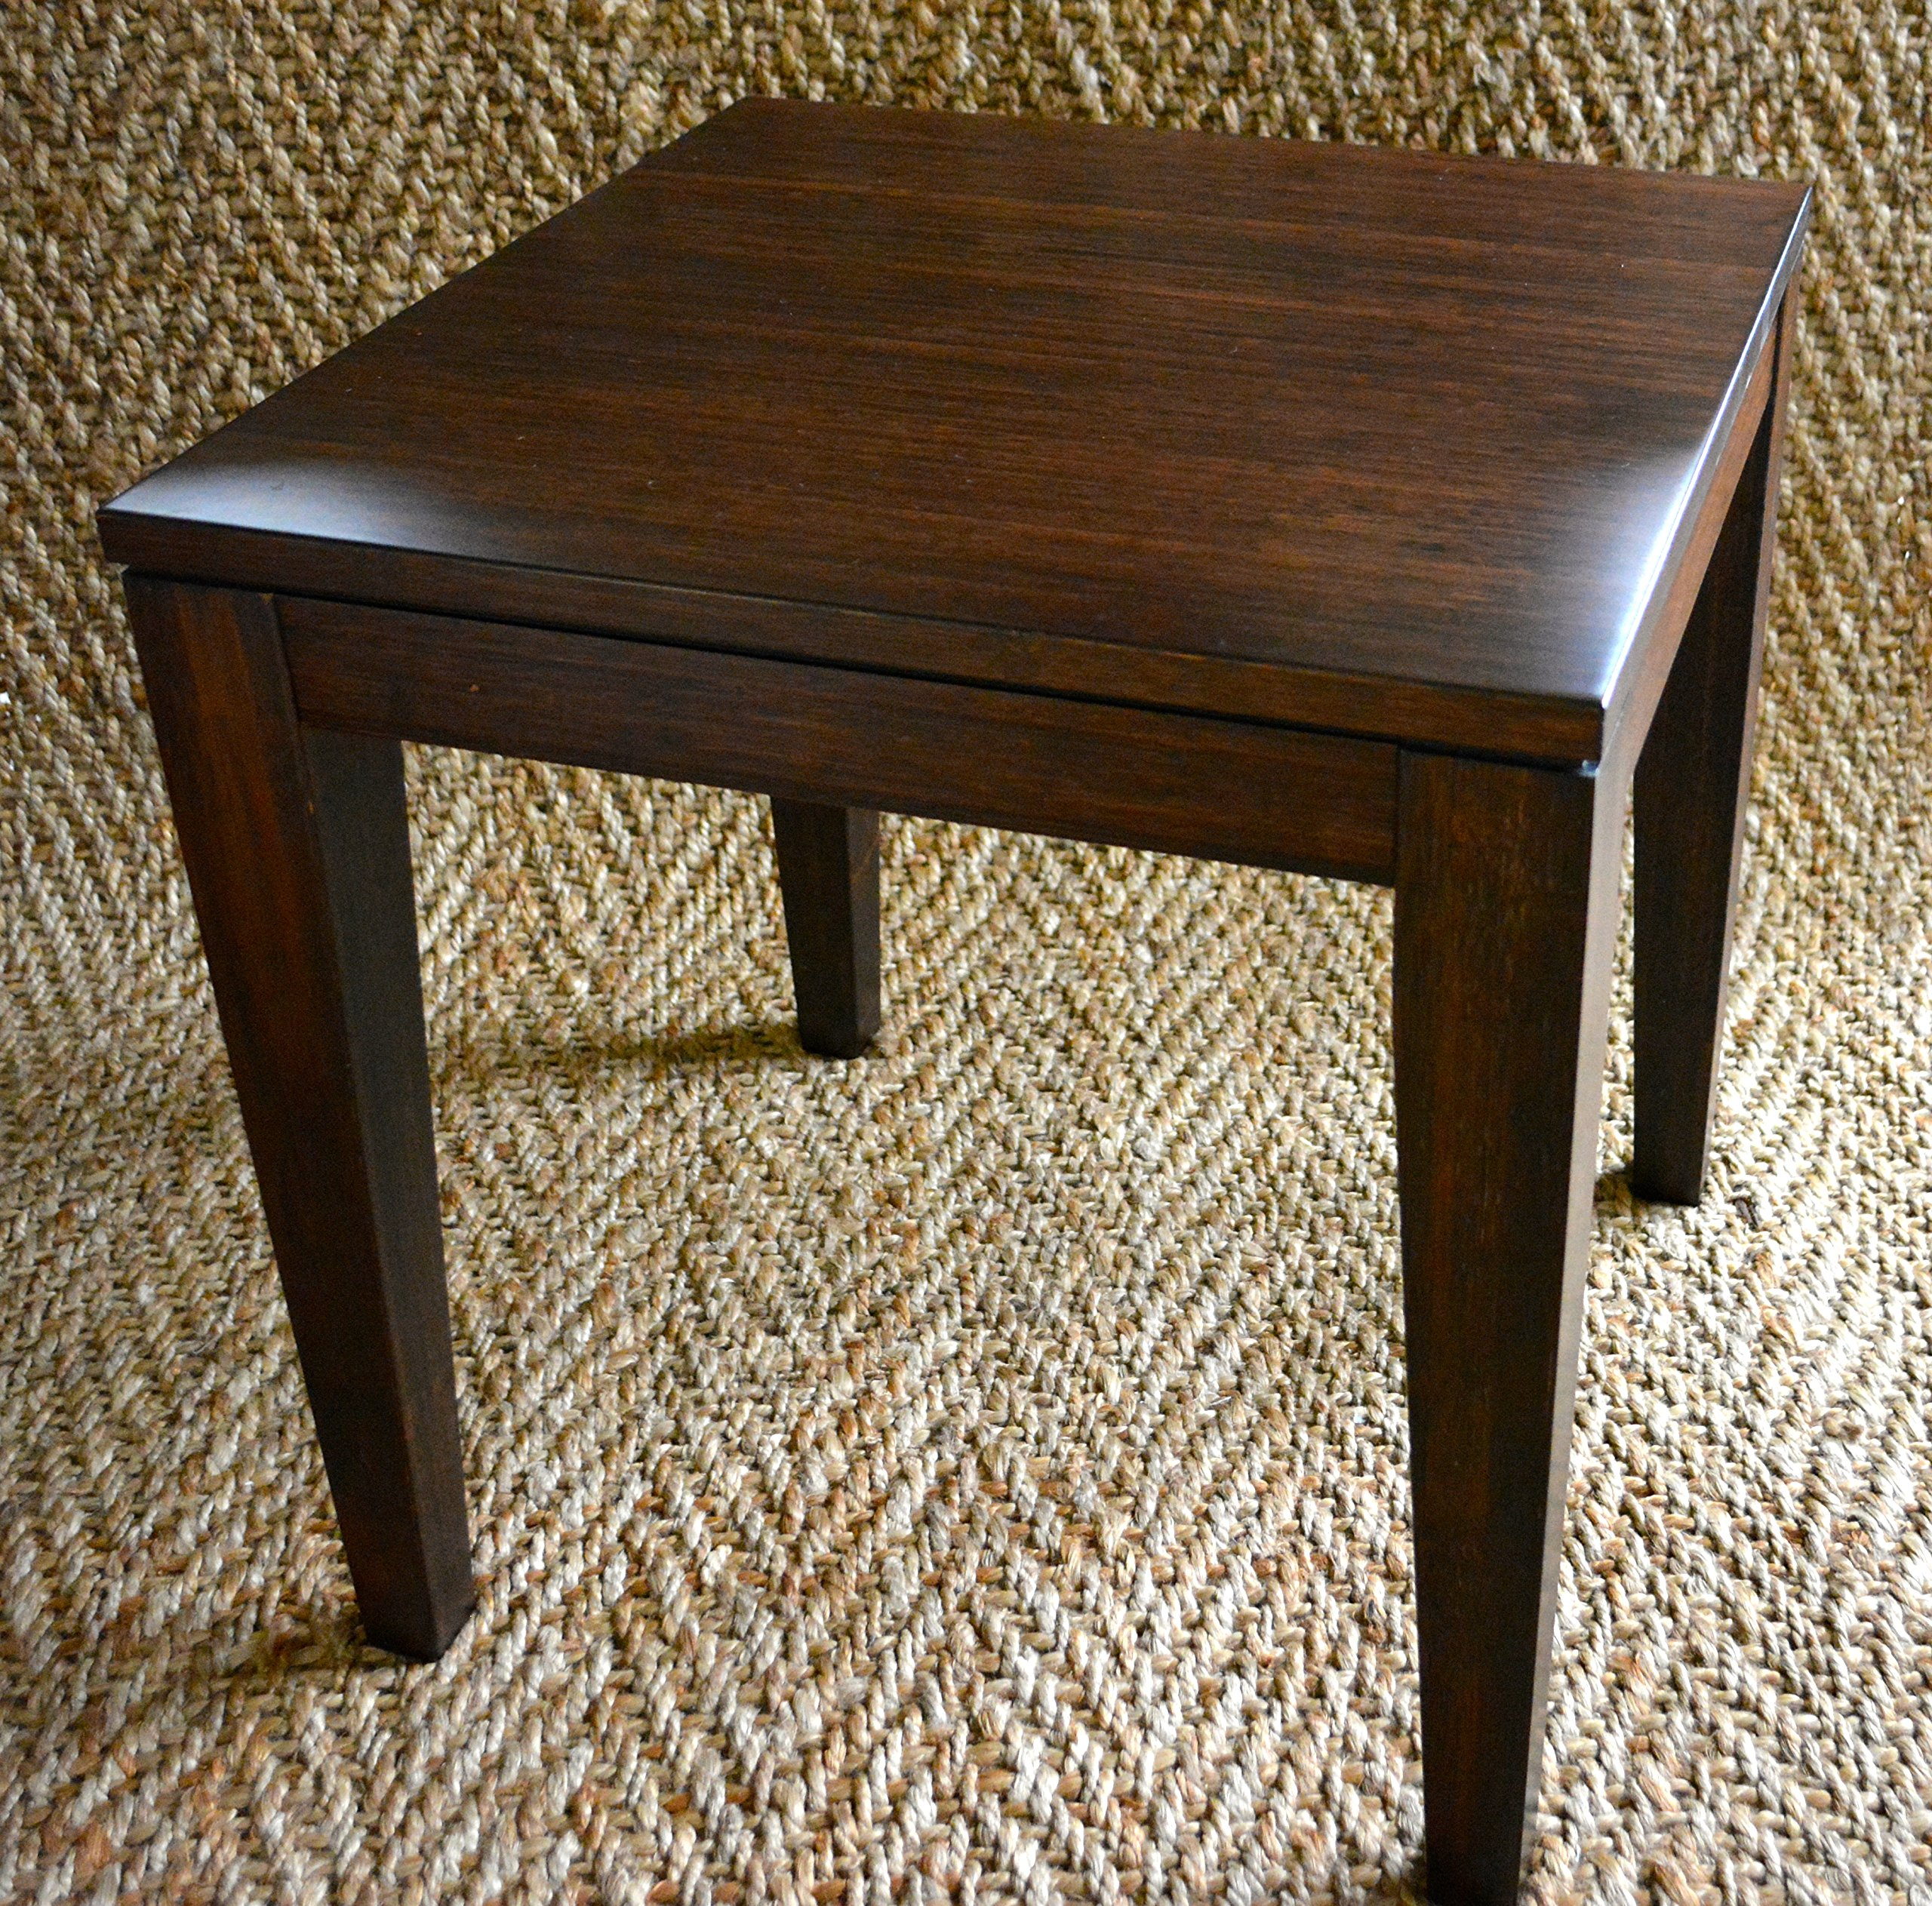 Bamboogle Interiors 30-2020J Brazil Collection Modern Bamboo End Table in Rich Java Espresso Finish